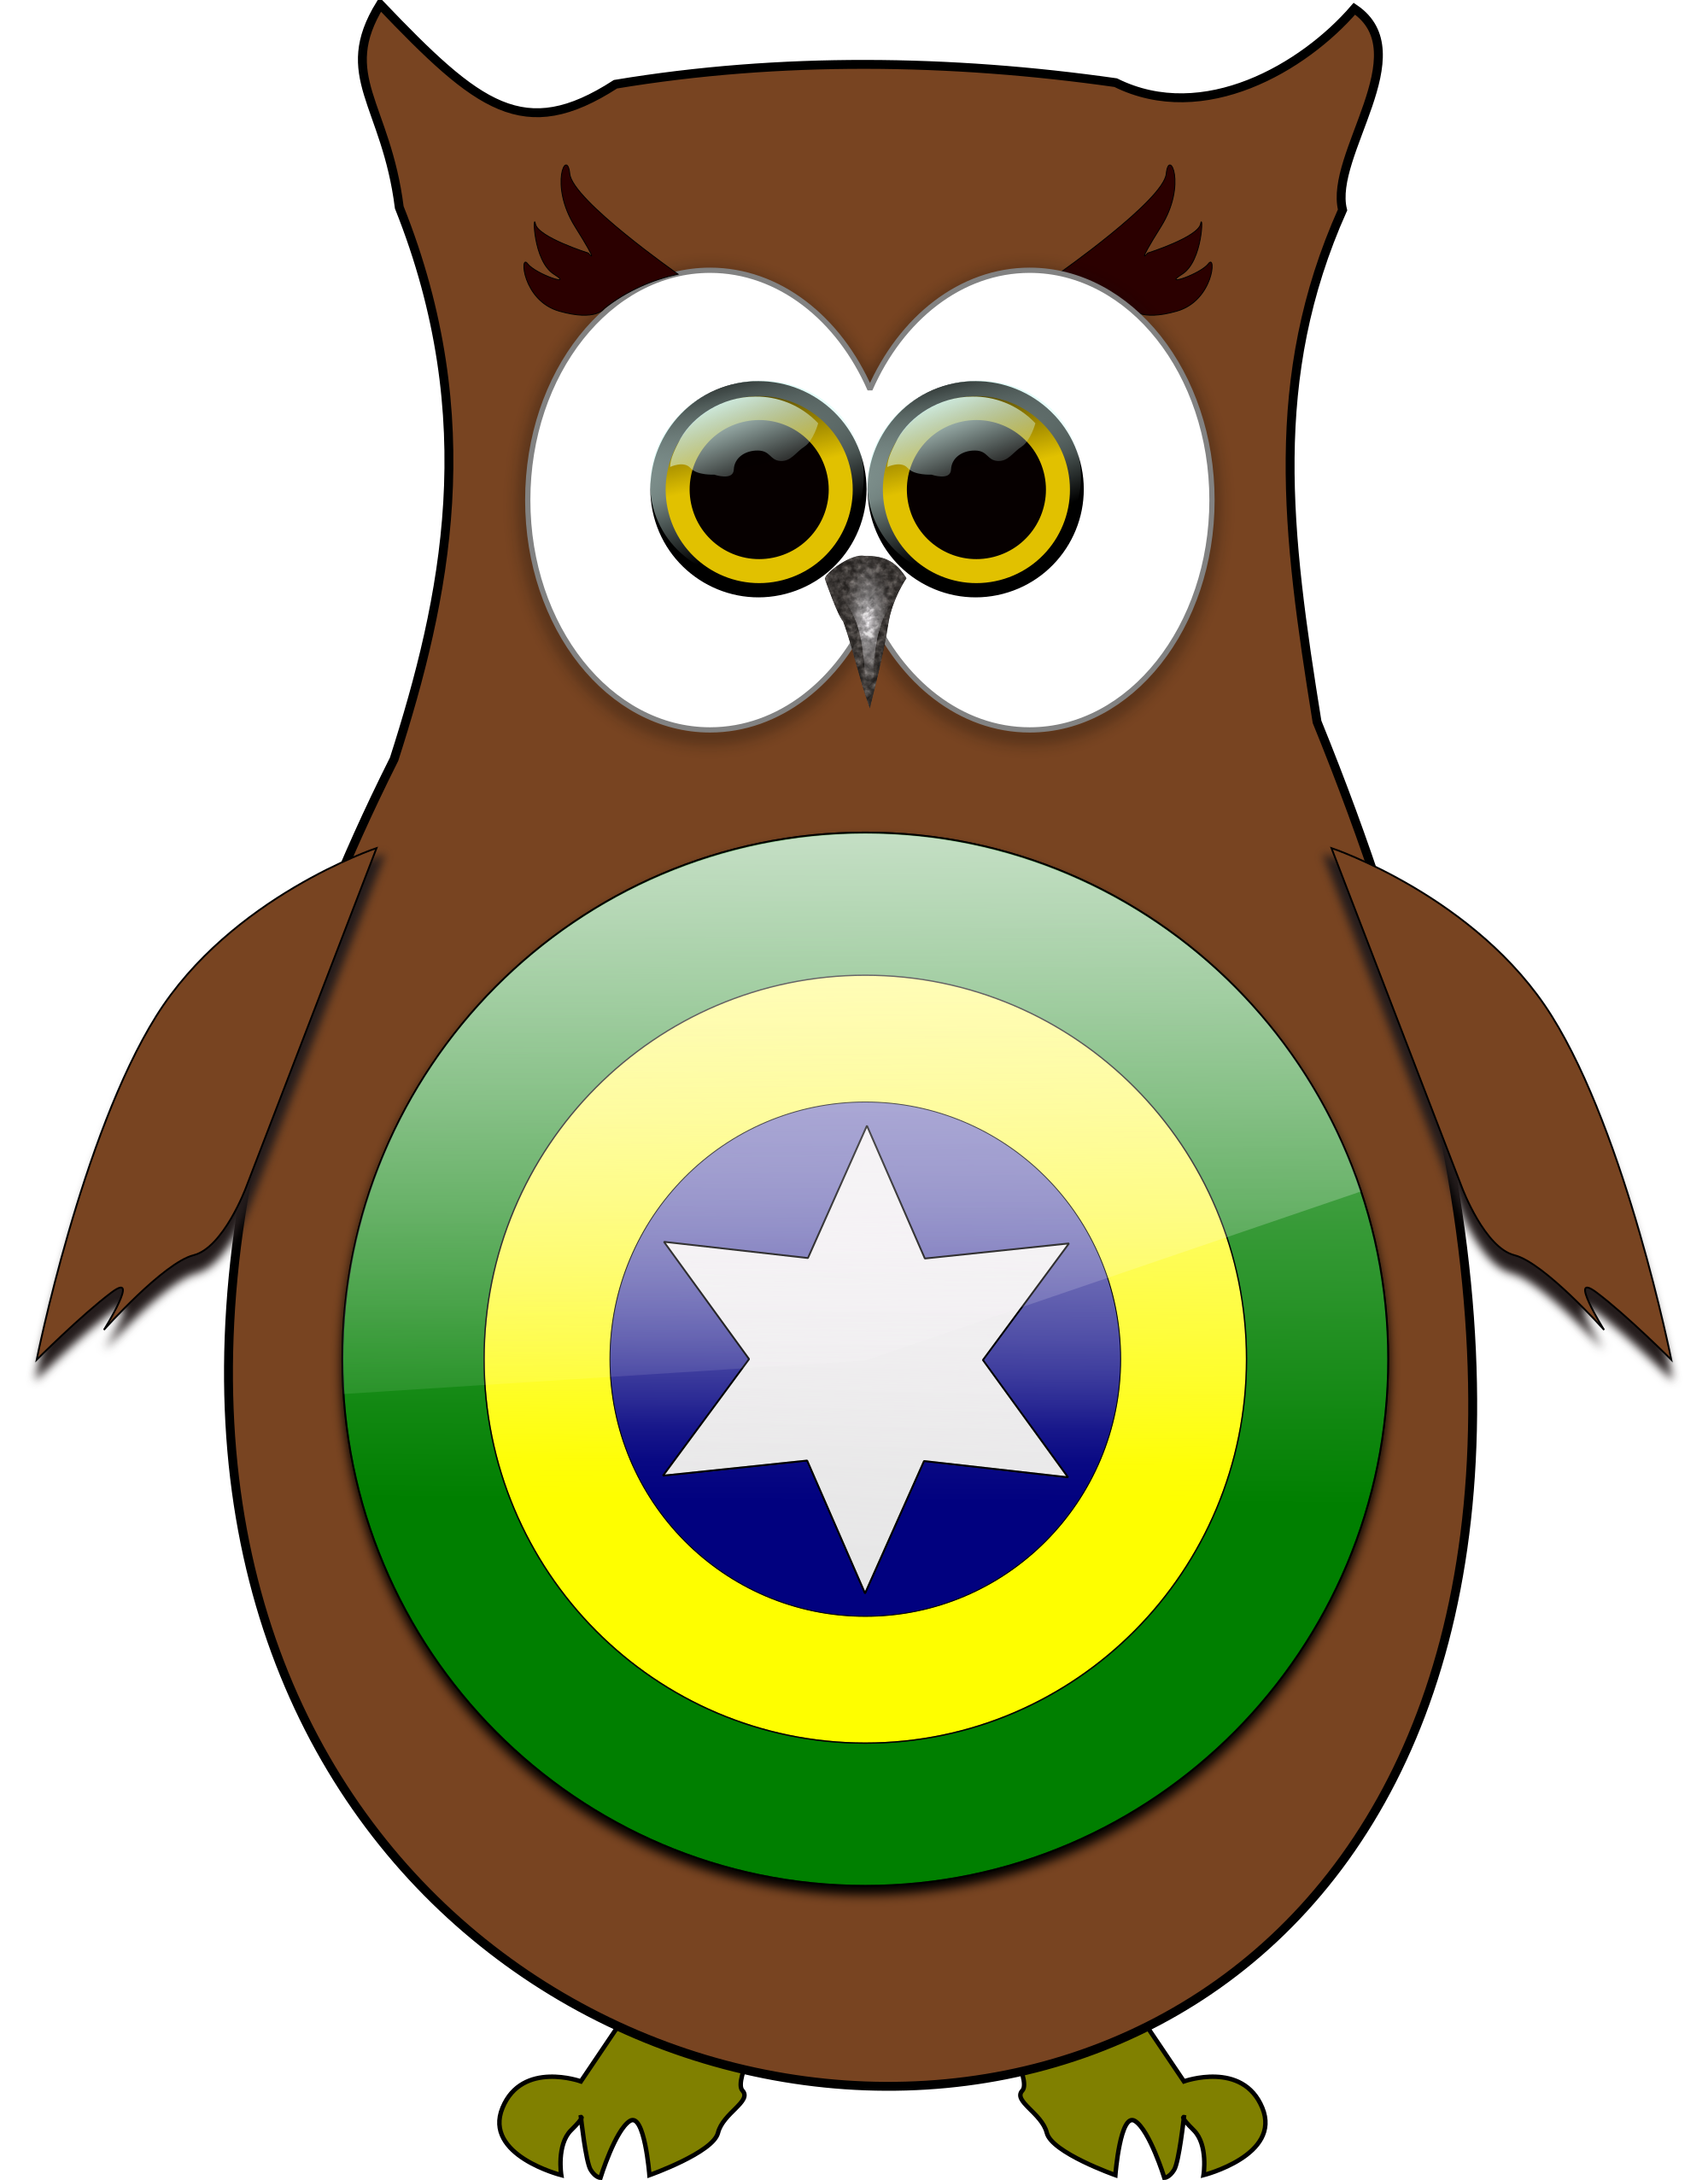 Super hero owl clipart royalty free download Free owl brazil superhero clipart clipart and vector image - Clipartix royalty free download